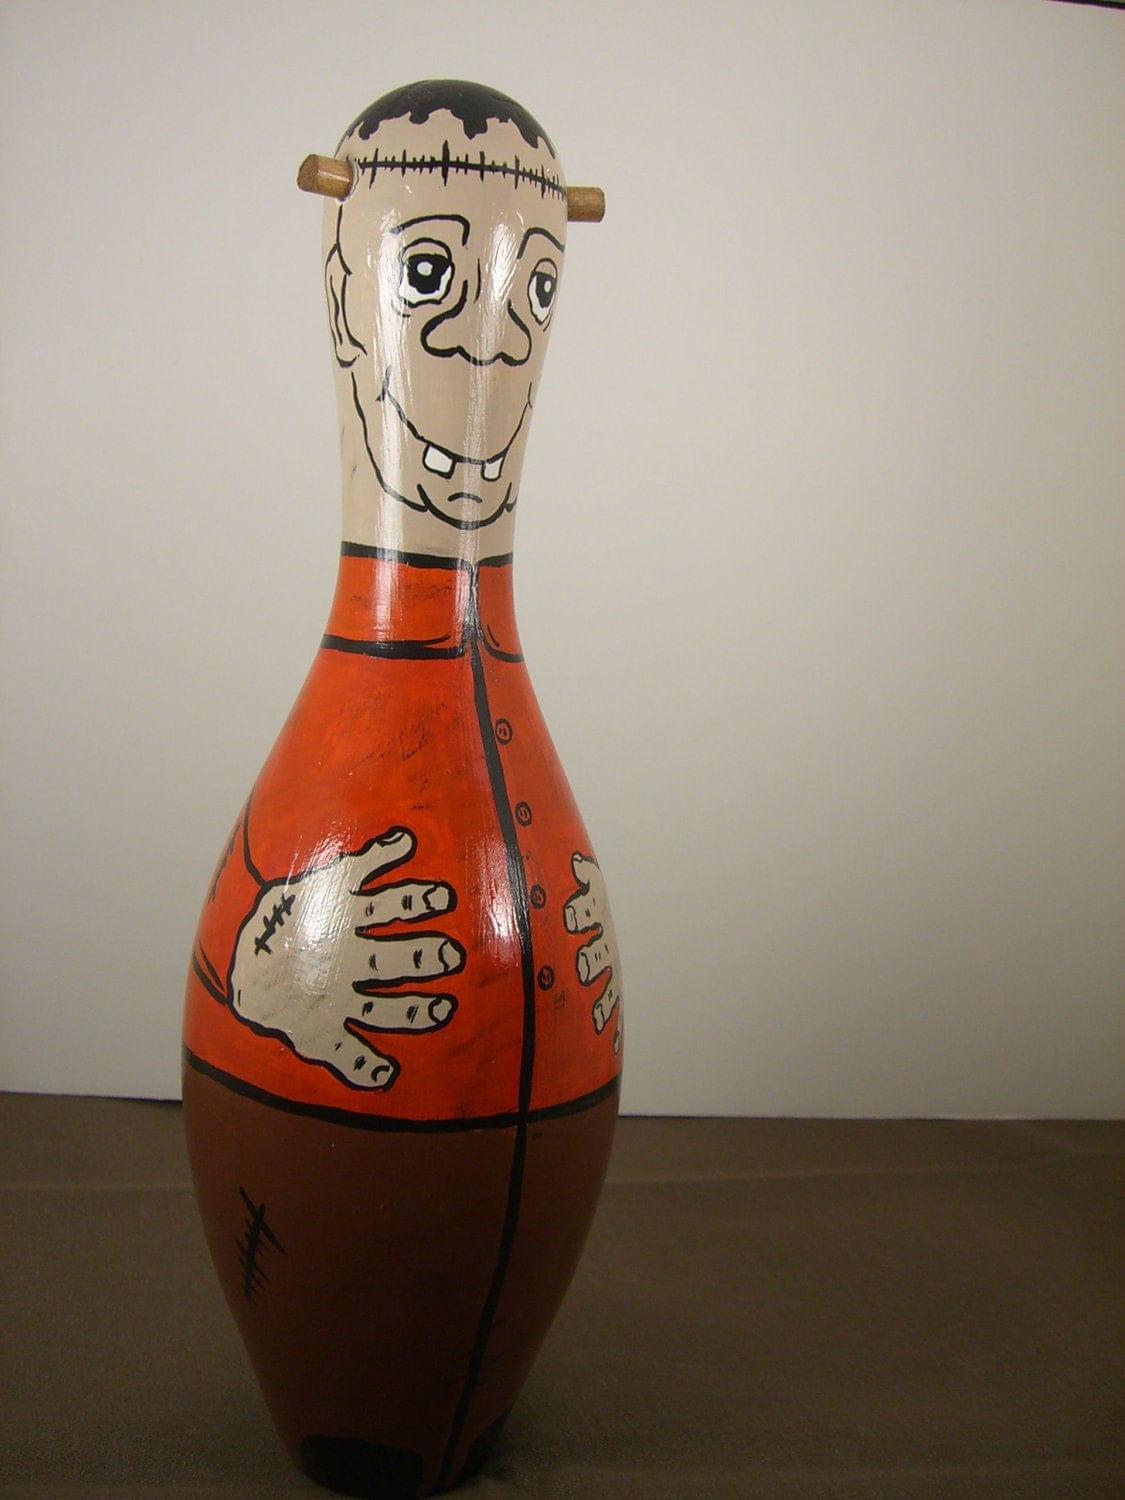 Pin By Jonika Tarot On Totally Tarot Group Board: Frankenstein Bowling Pin By Erwindoodads On Etsy